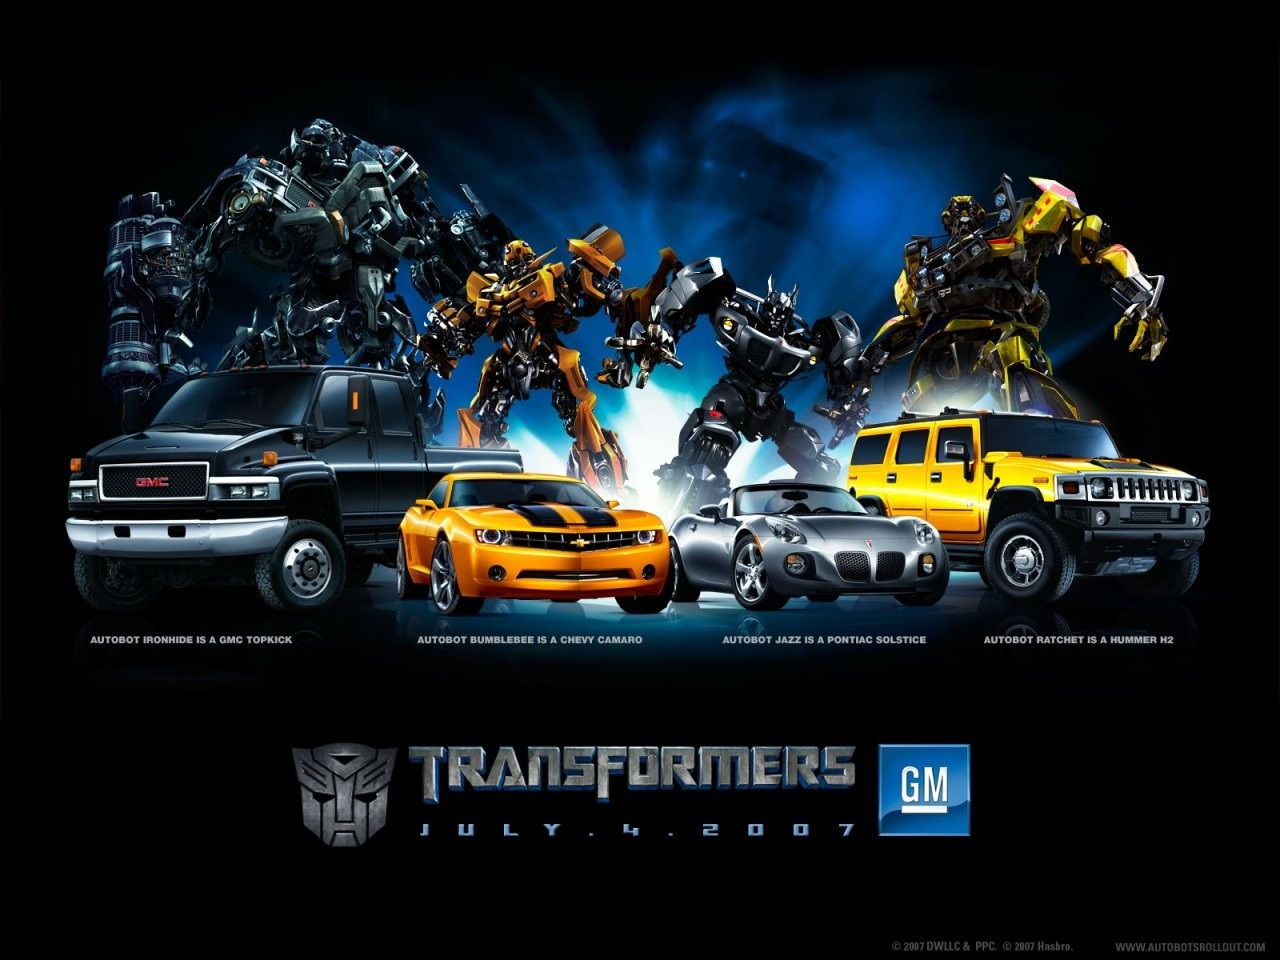 http://1.bp.blogspot.com/-WX6jcVEcruA/TgiqYWYBoqI/AAAAAAAABLs/BUZf9AMKg5I/s1600/Transformers+3+movie+-wallpaper-02.jpg